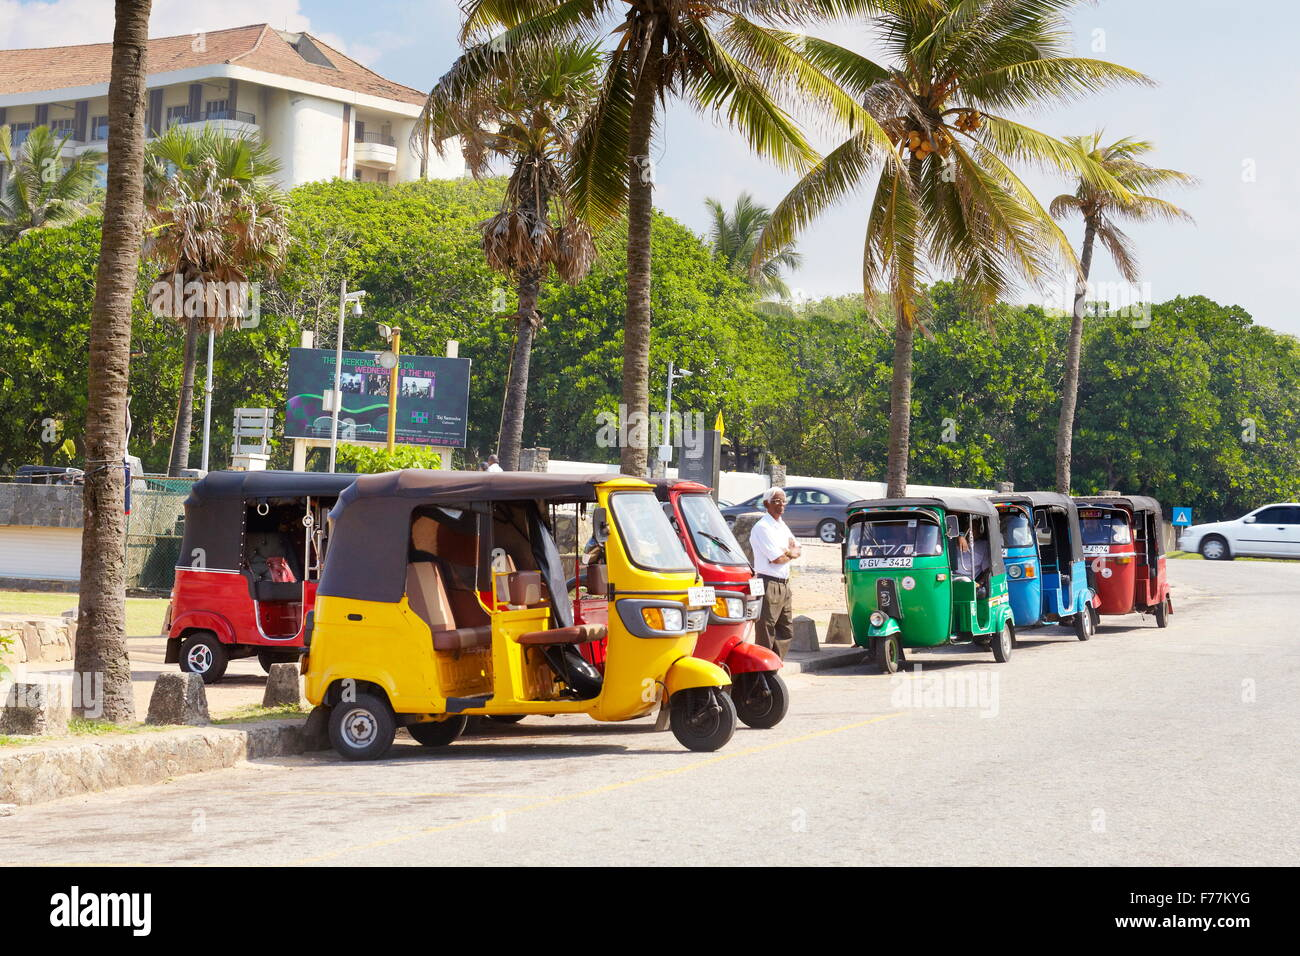 Sri Lanka - Colombo, tuk tuk taxi, typical way of transport - Stock Image